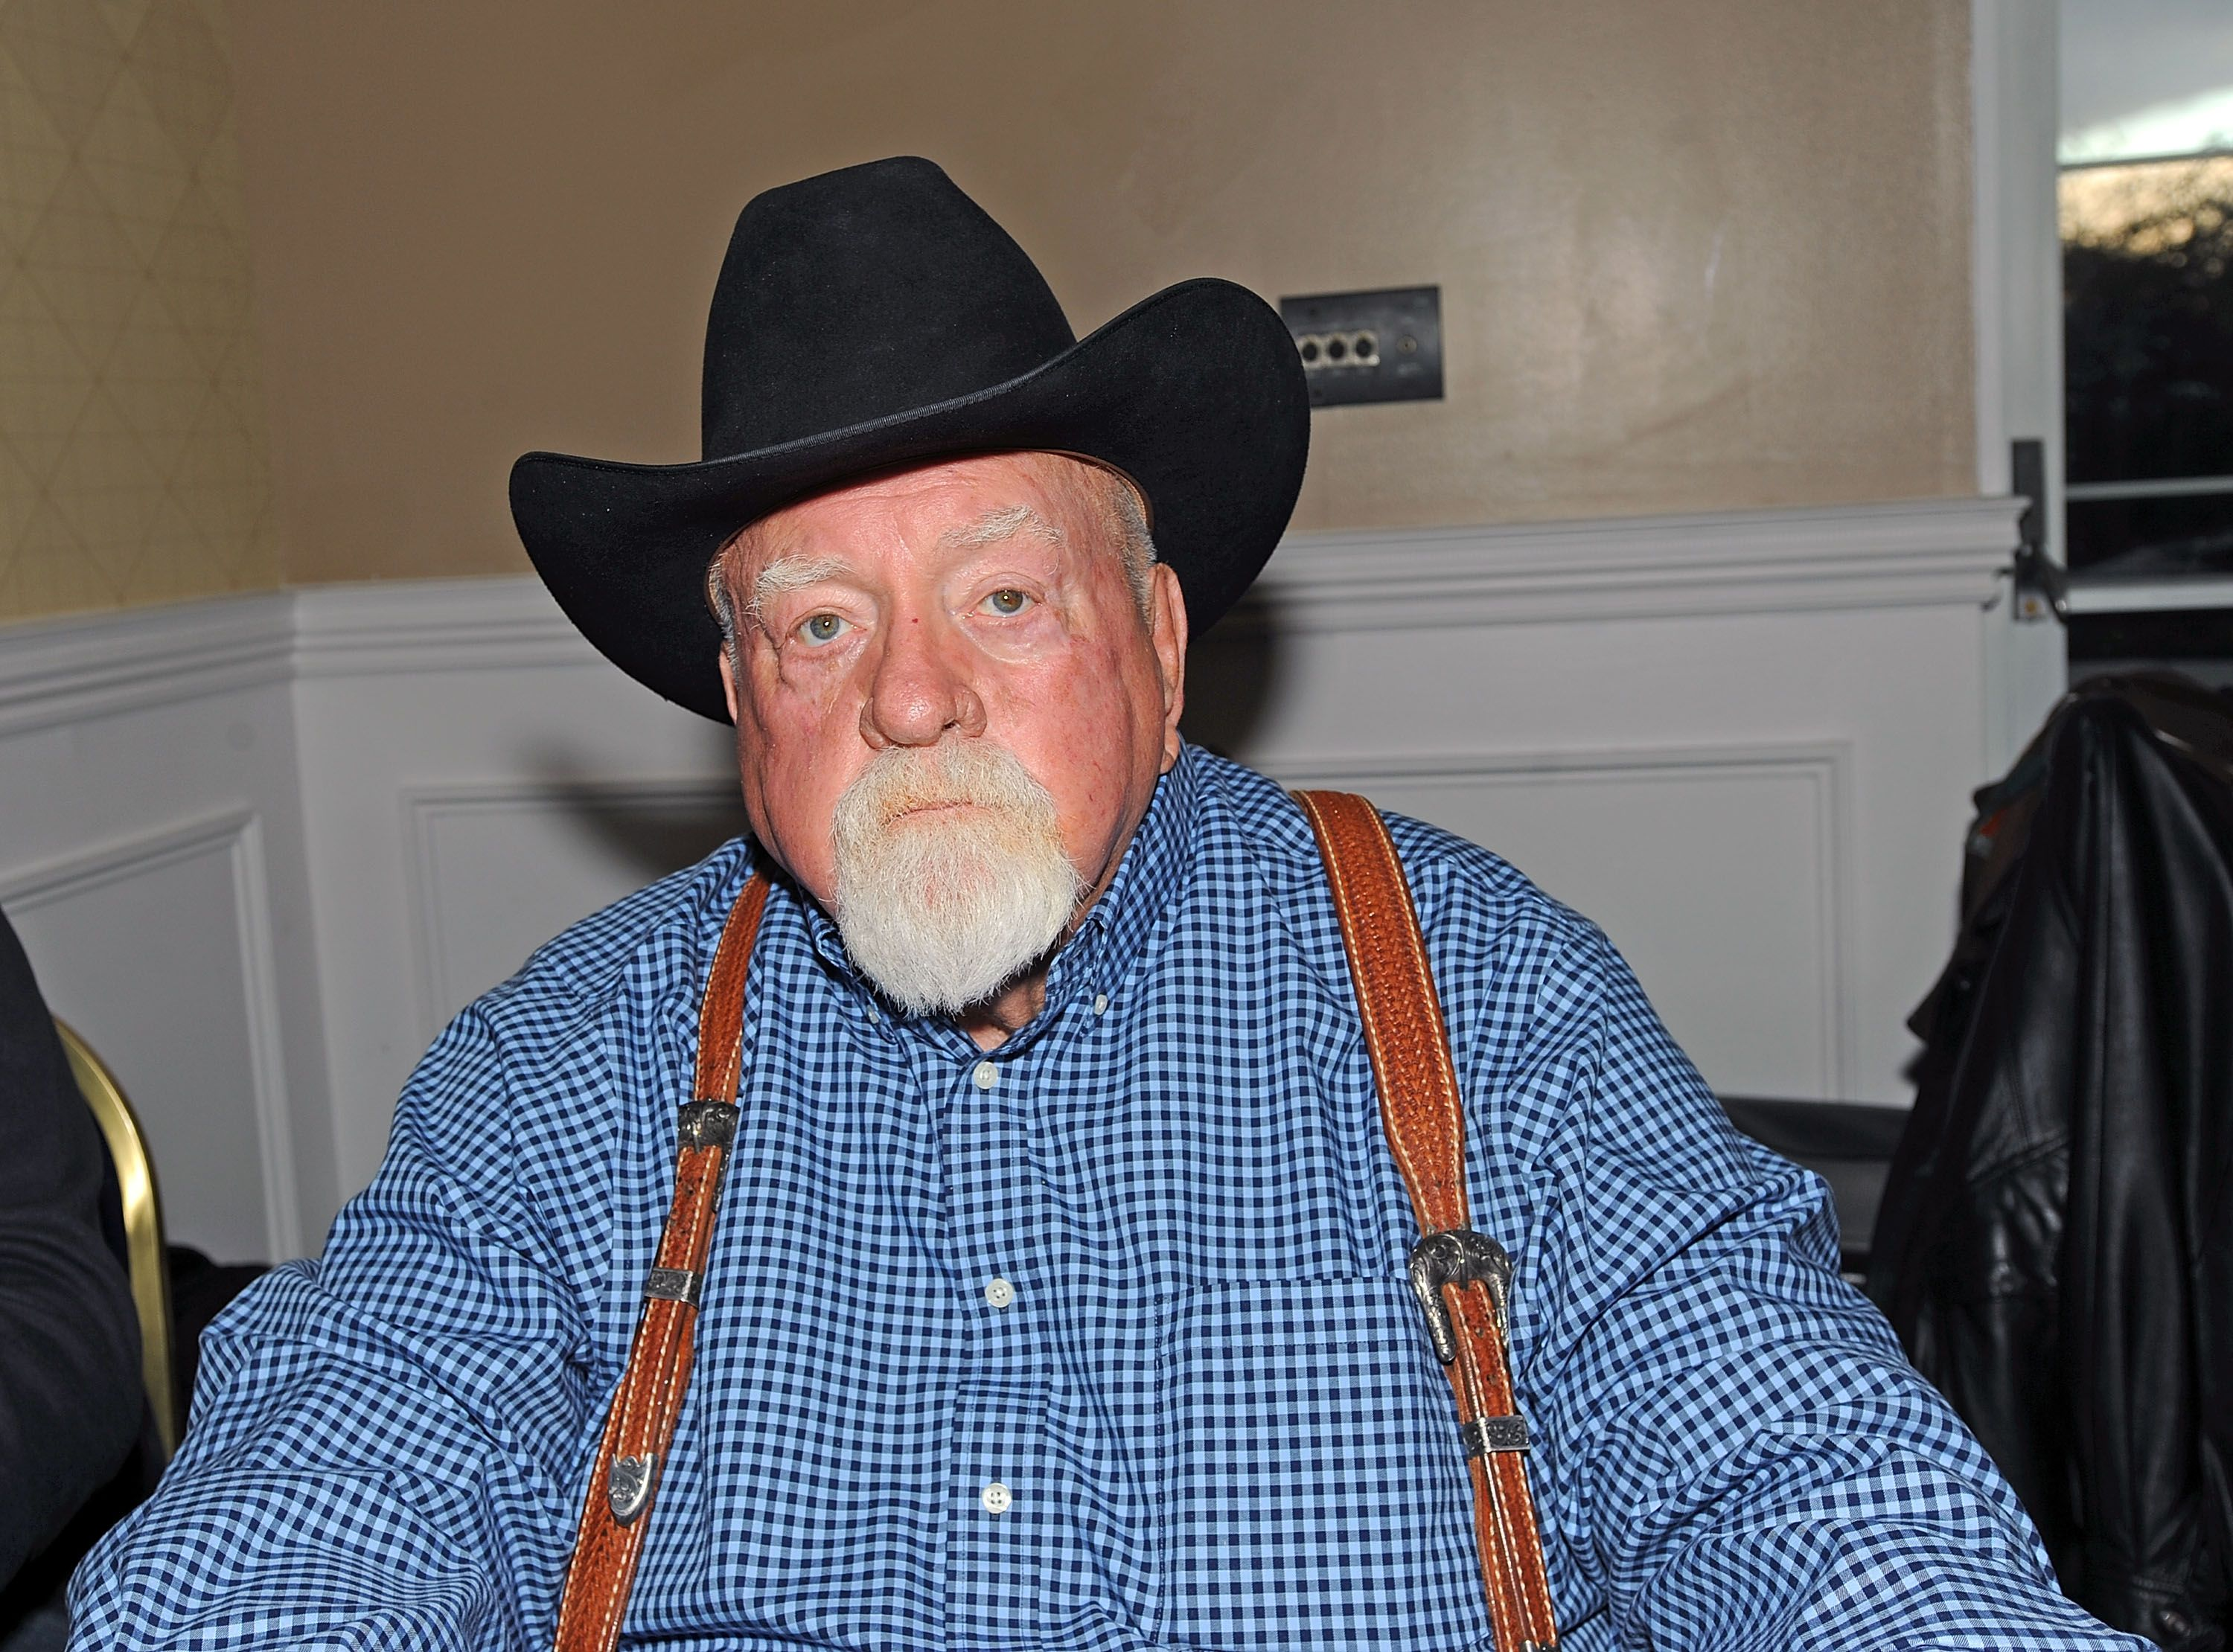 Actor Wilford Brimley at the 2017 Monster Mania Con at NJ Crowne Plaza Hotel in Cherry Hill, New Jersey | Photo:Getty Images